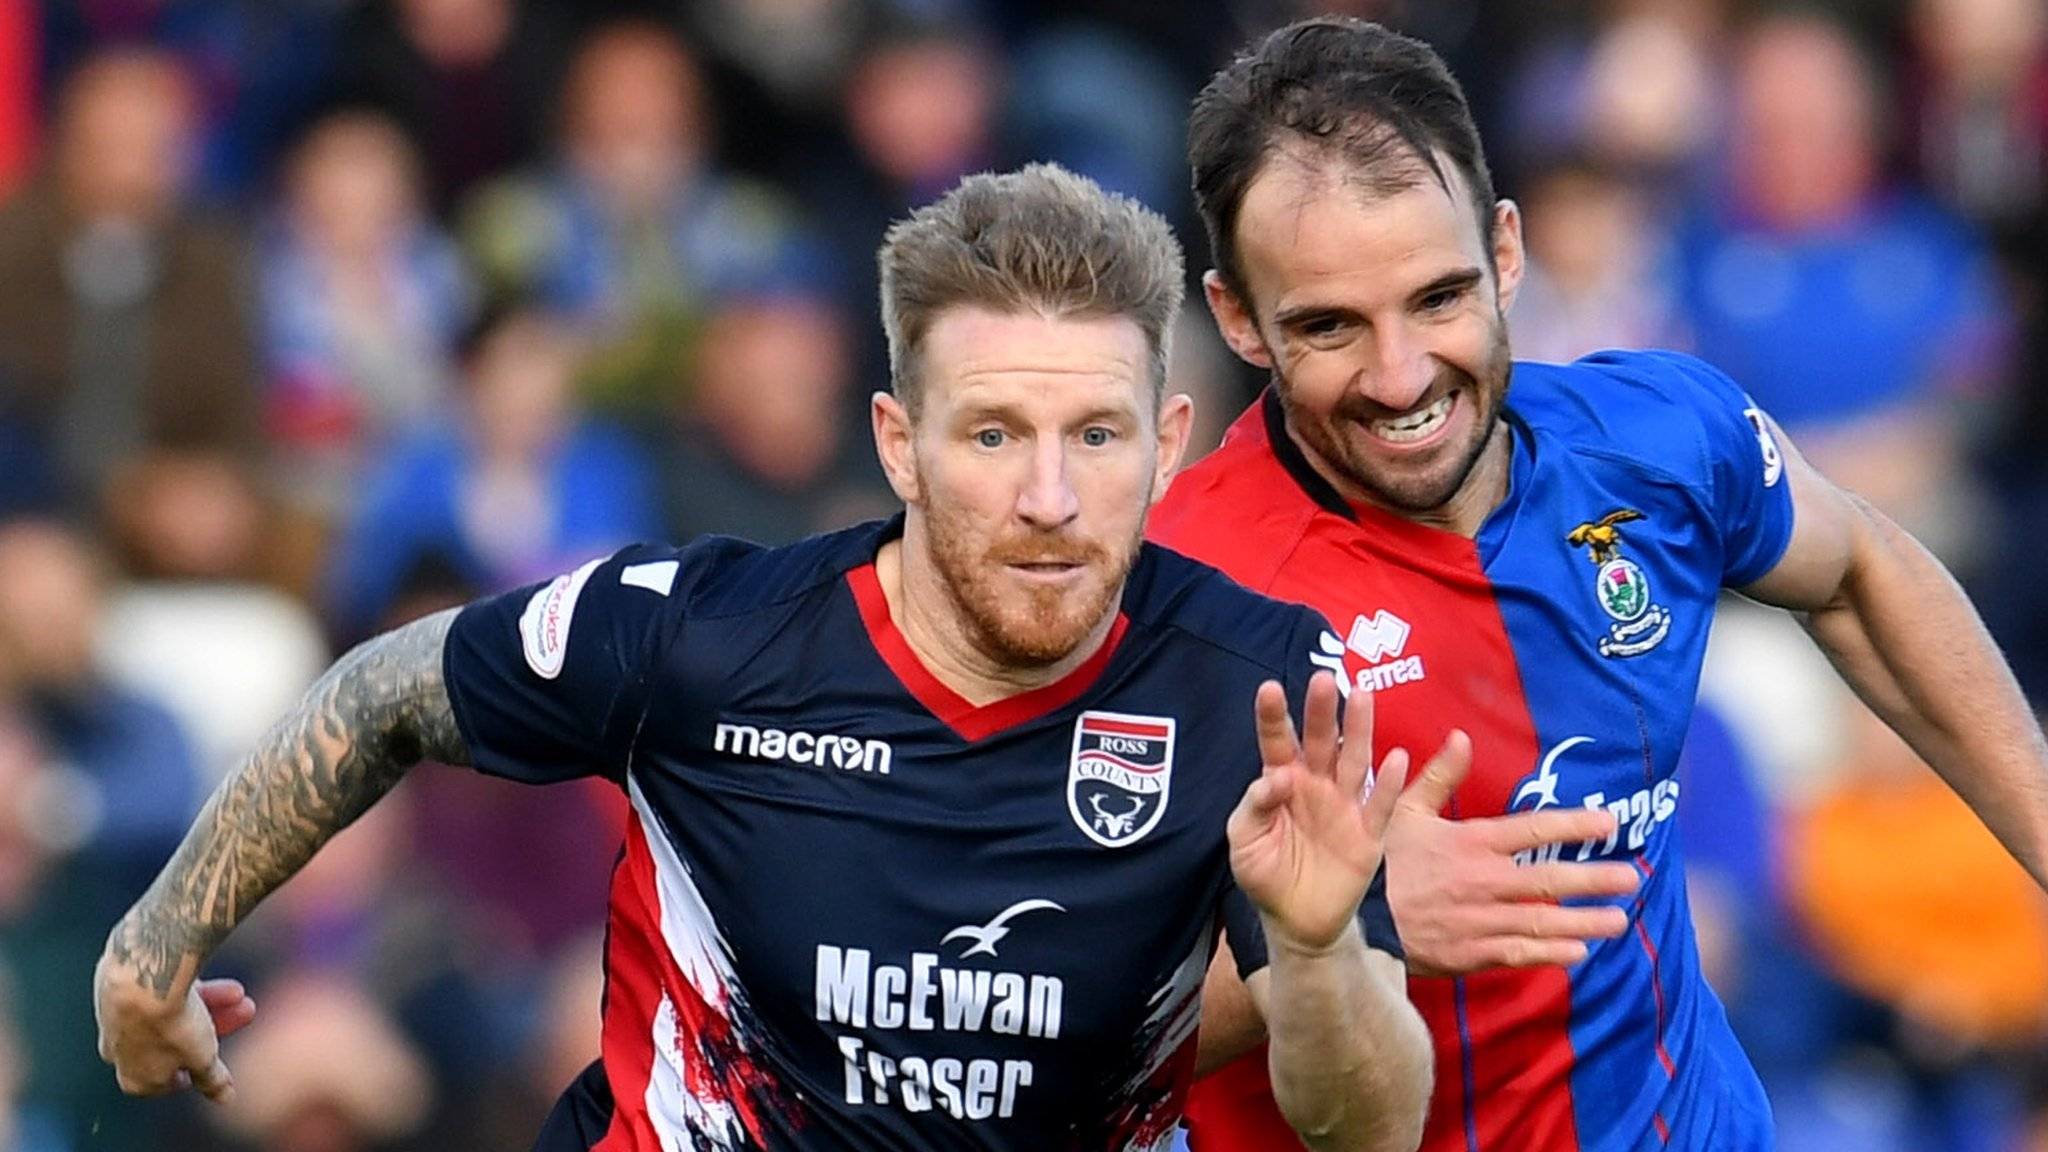 Ross County 0-0 Inverness CT: Highland rivals end goalless